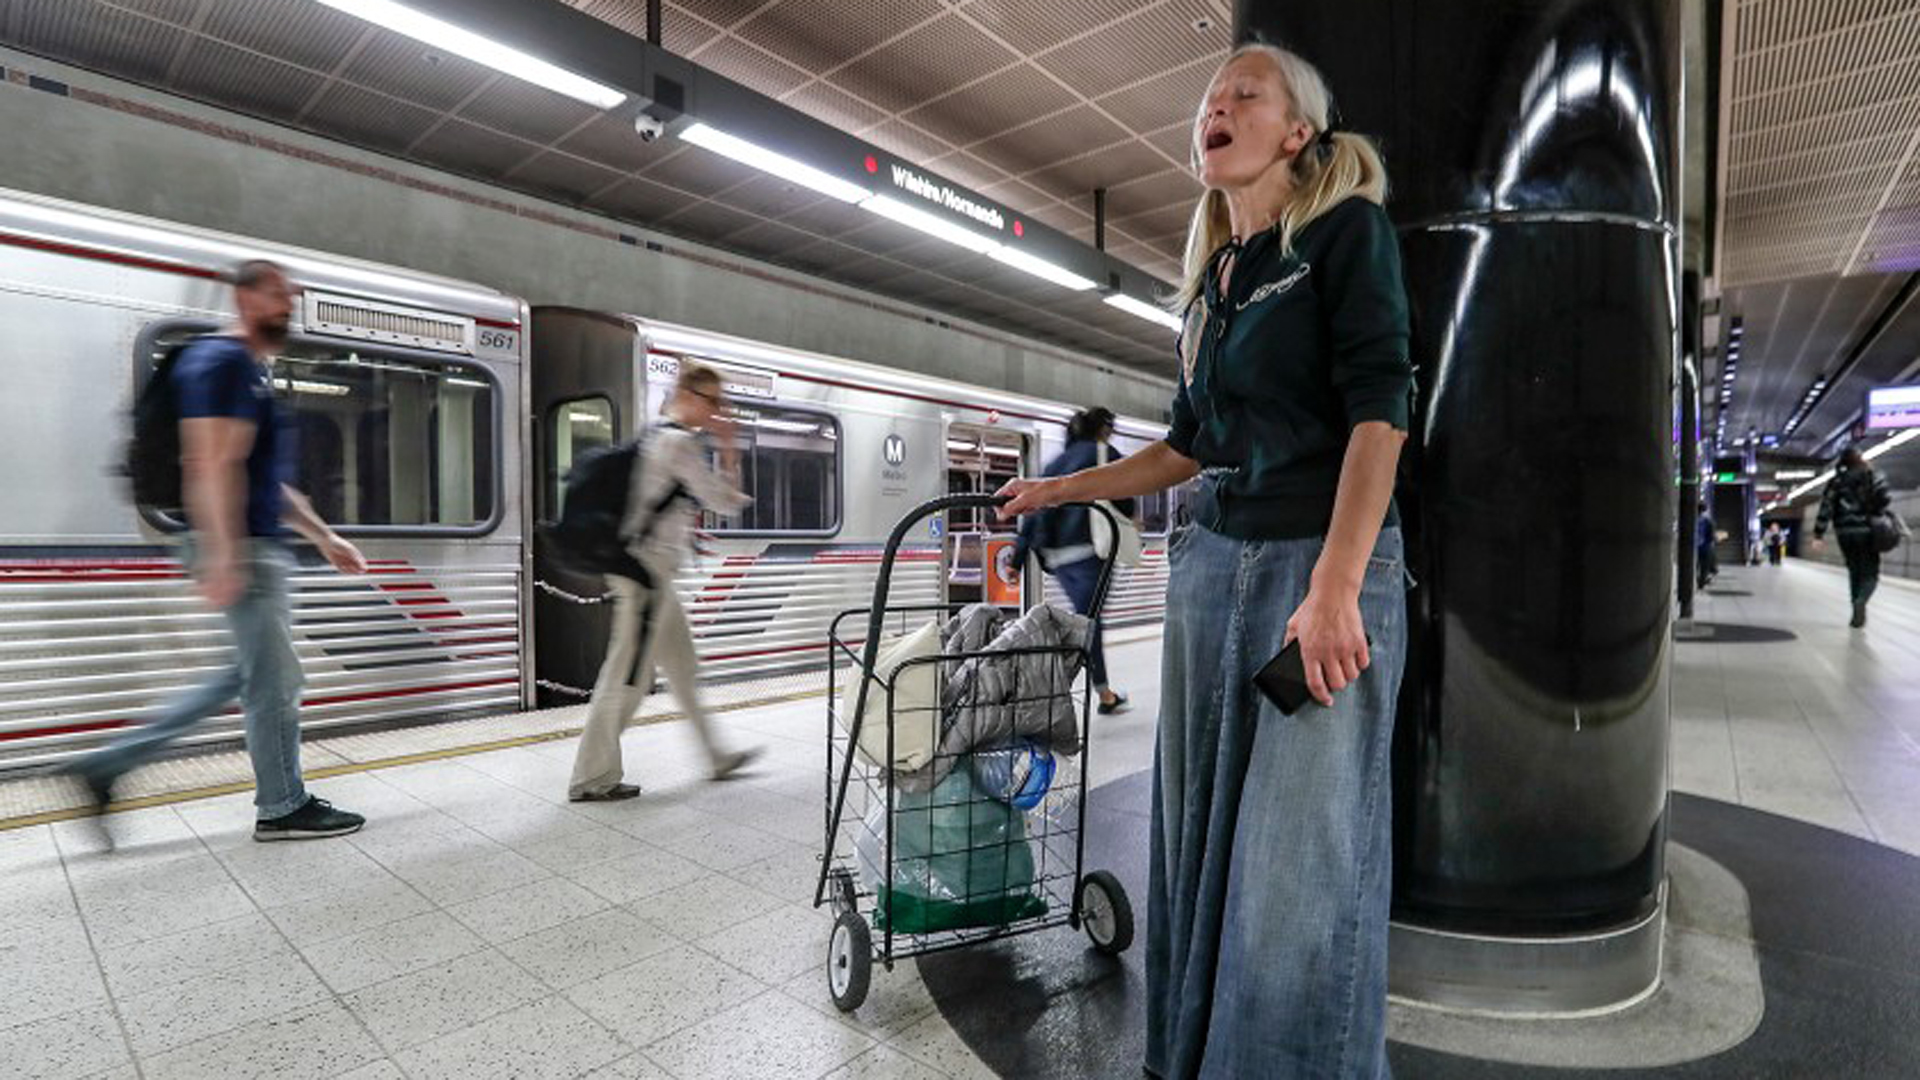 Emily Zamourka sings in a subway station in Koreatown.(Credit: Robert Gauthier / Los Angeles Times)